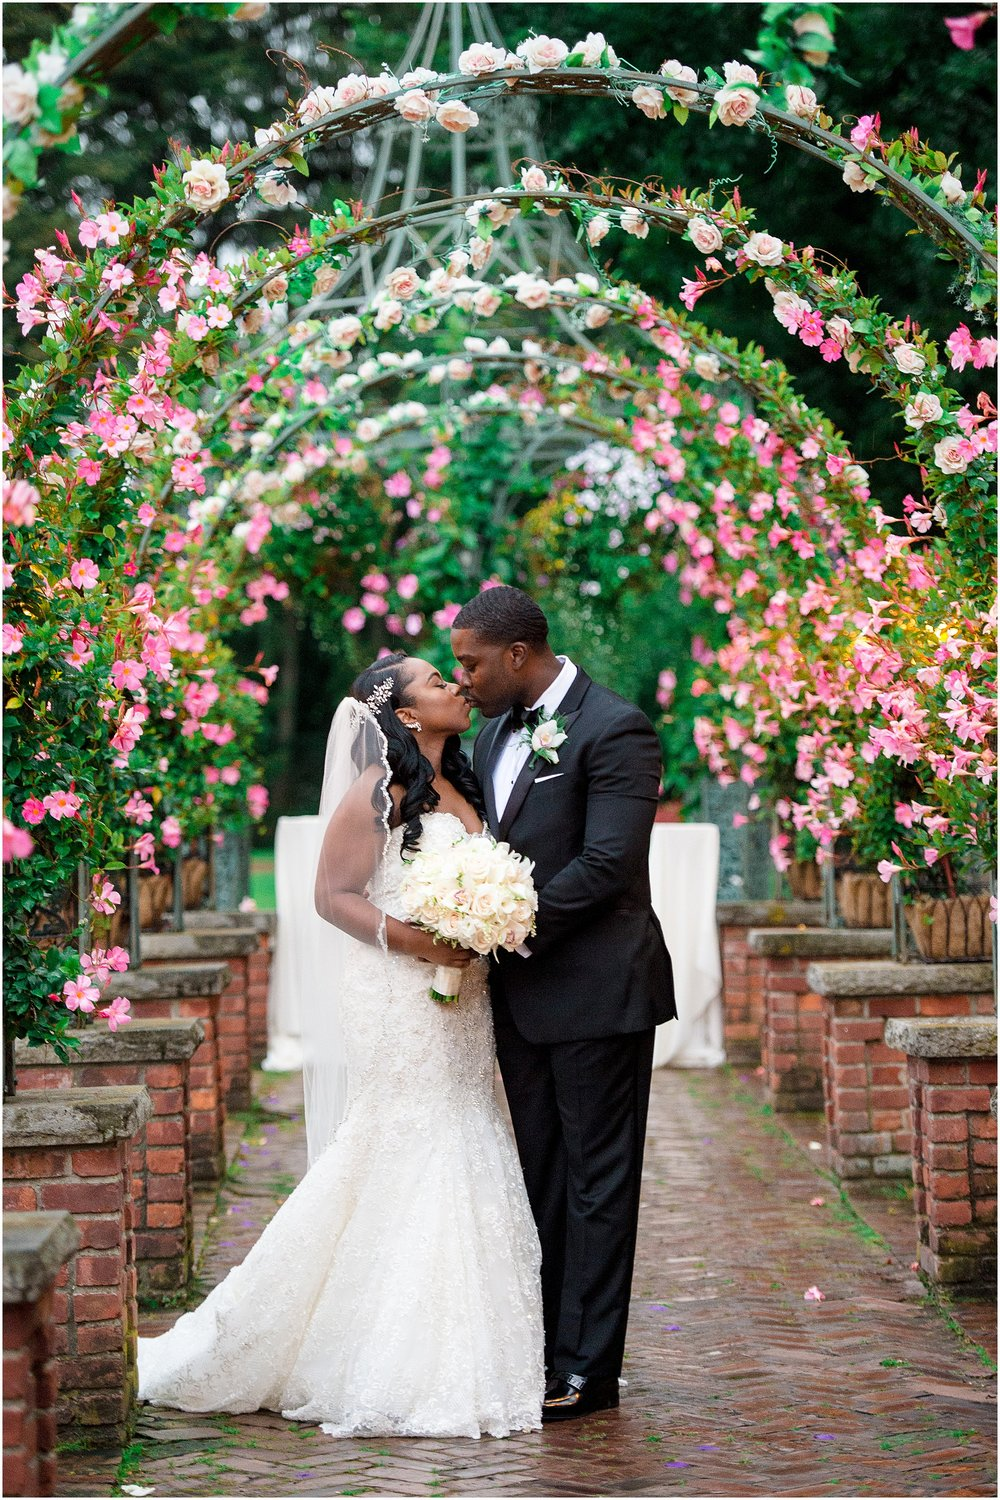 02 Platinum Label - 8 hours of Wedding day coverageOnline gallery of digital images from your Wedding day10x10 Fine Art Wedding Album | 30 PagesTwo PhotographersComplimentary Engagement session$5500